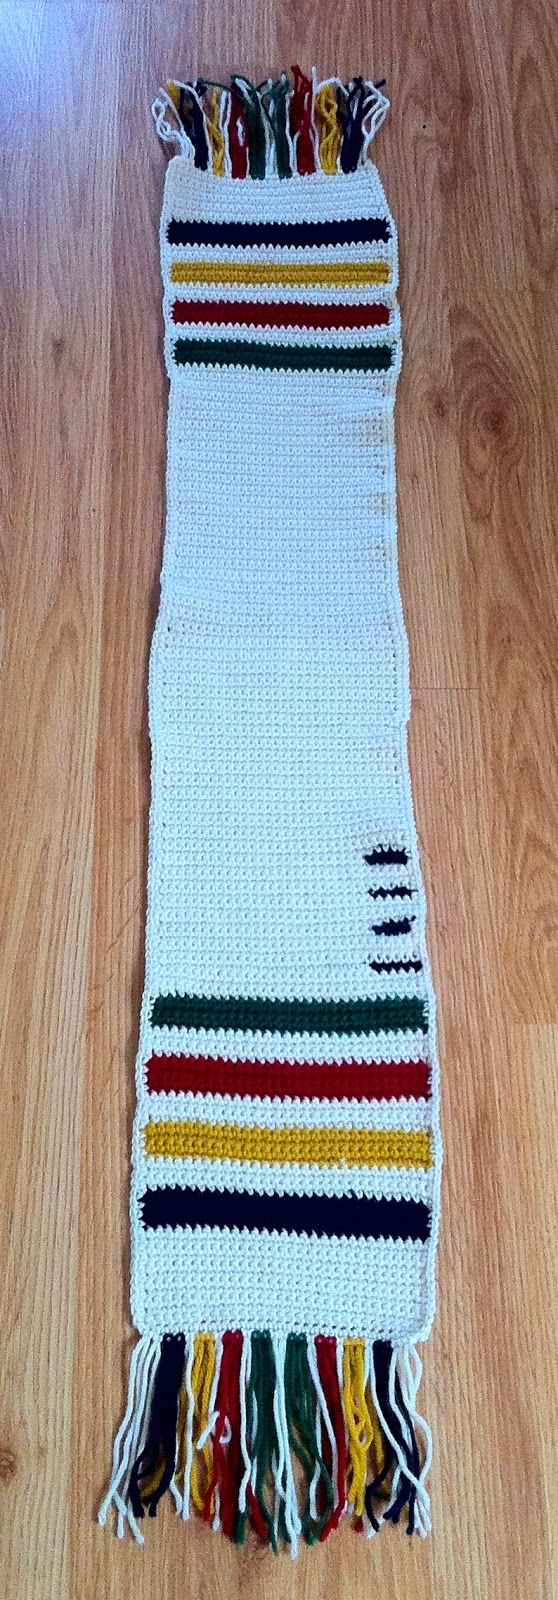 Hudsons bay blanket crochet scarf crochet pinterest blanket hudsons bay blanket crochet scarf bankloansurffo Image collections